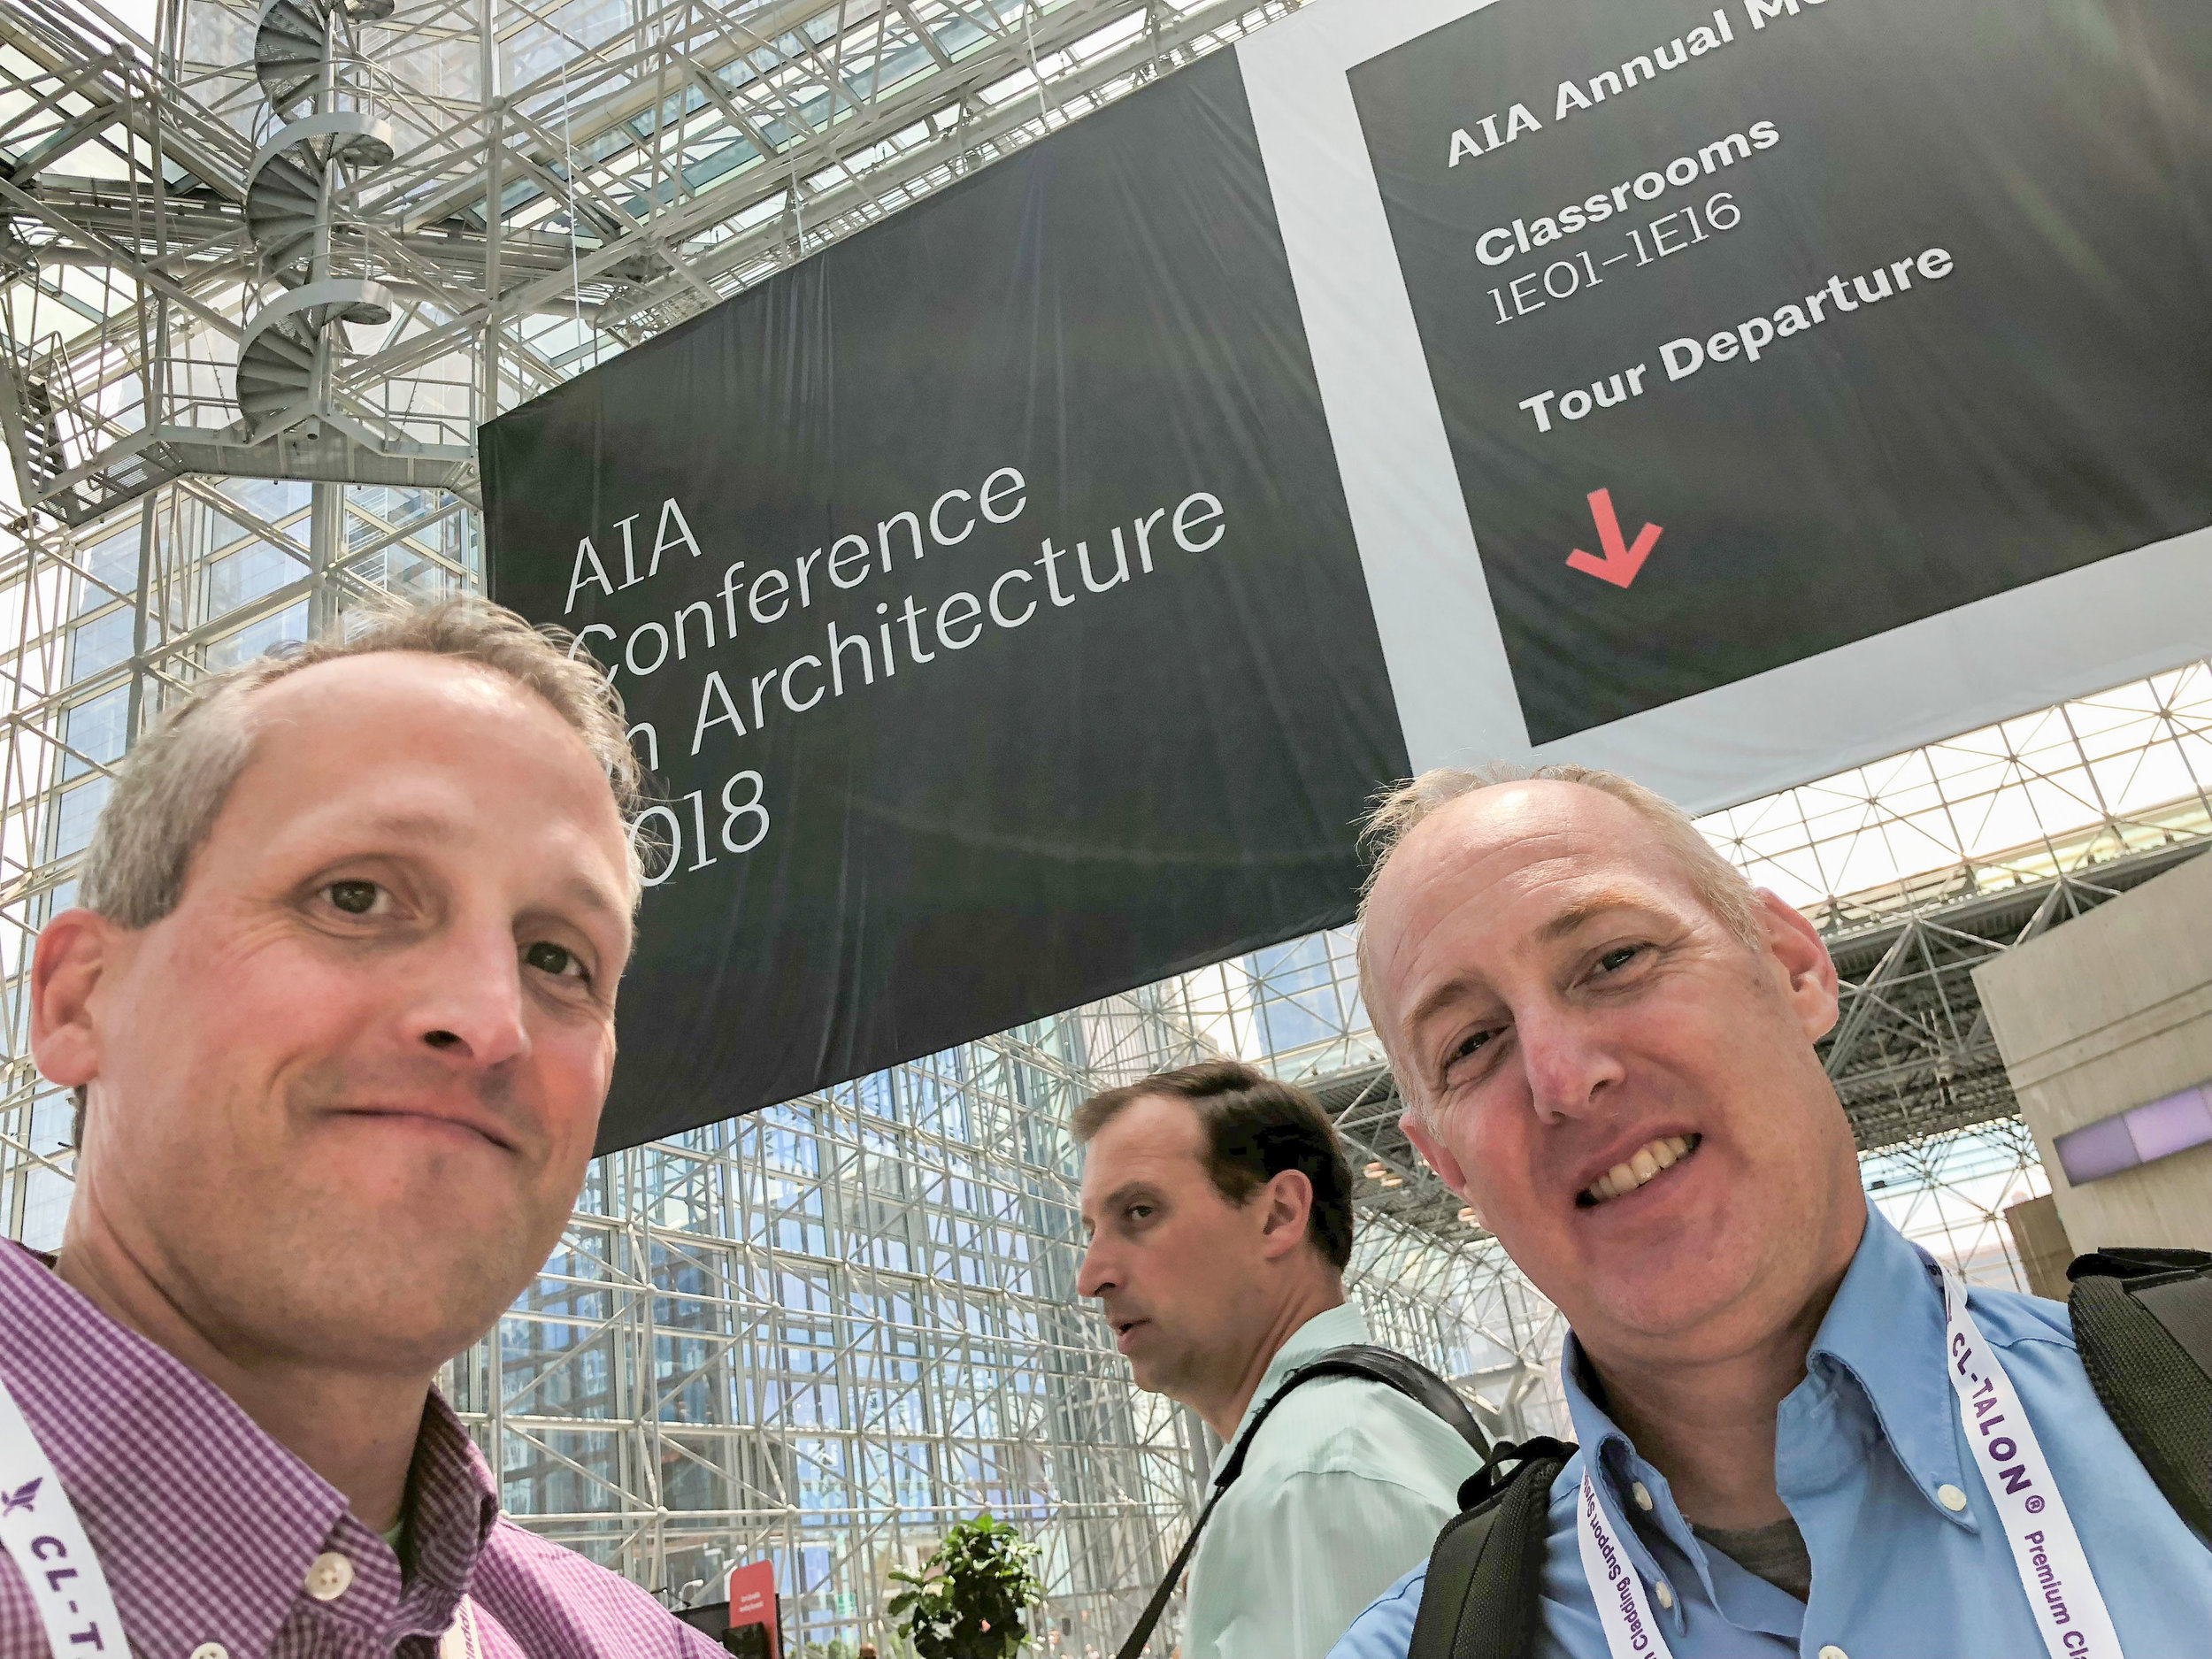 2018 06 21 - AIA National - Architecture Post -_.jpg